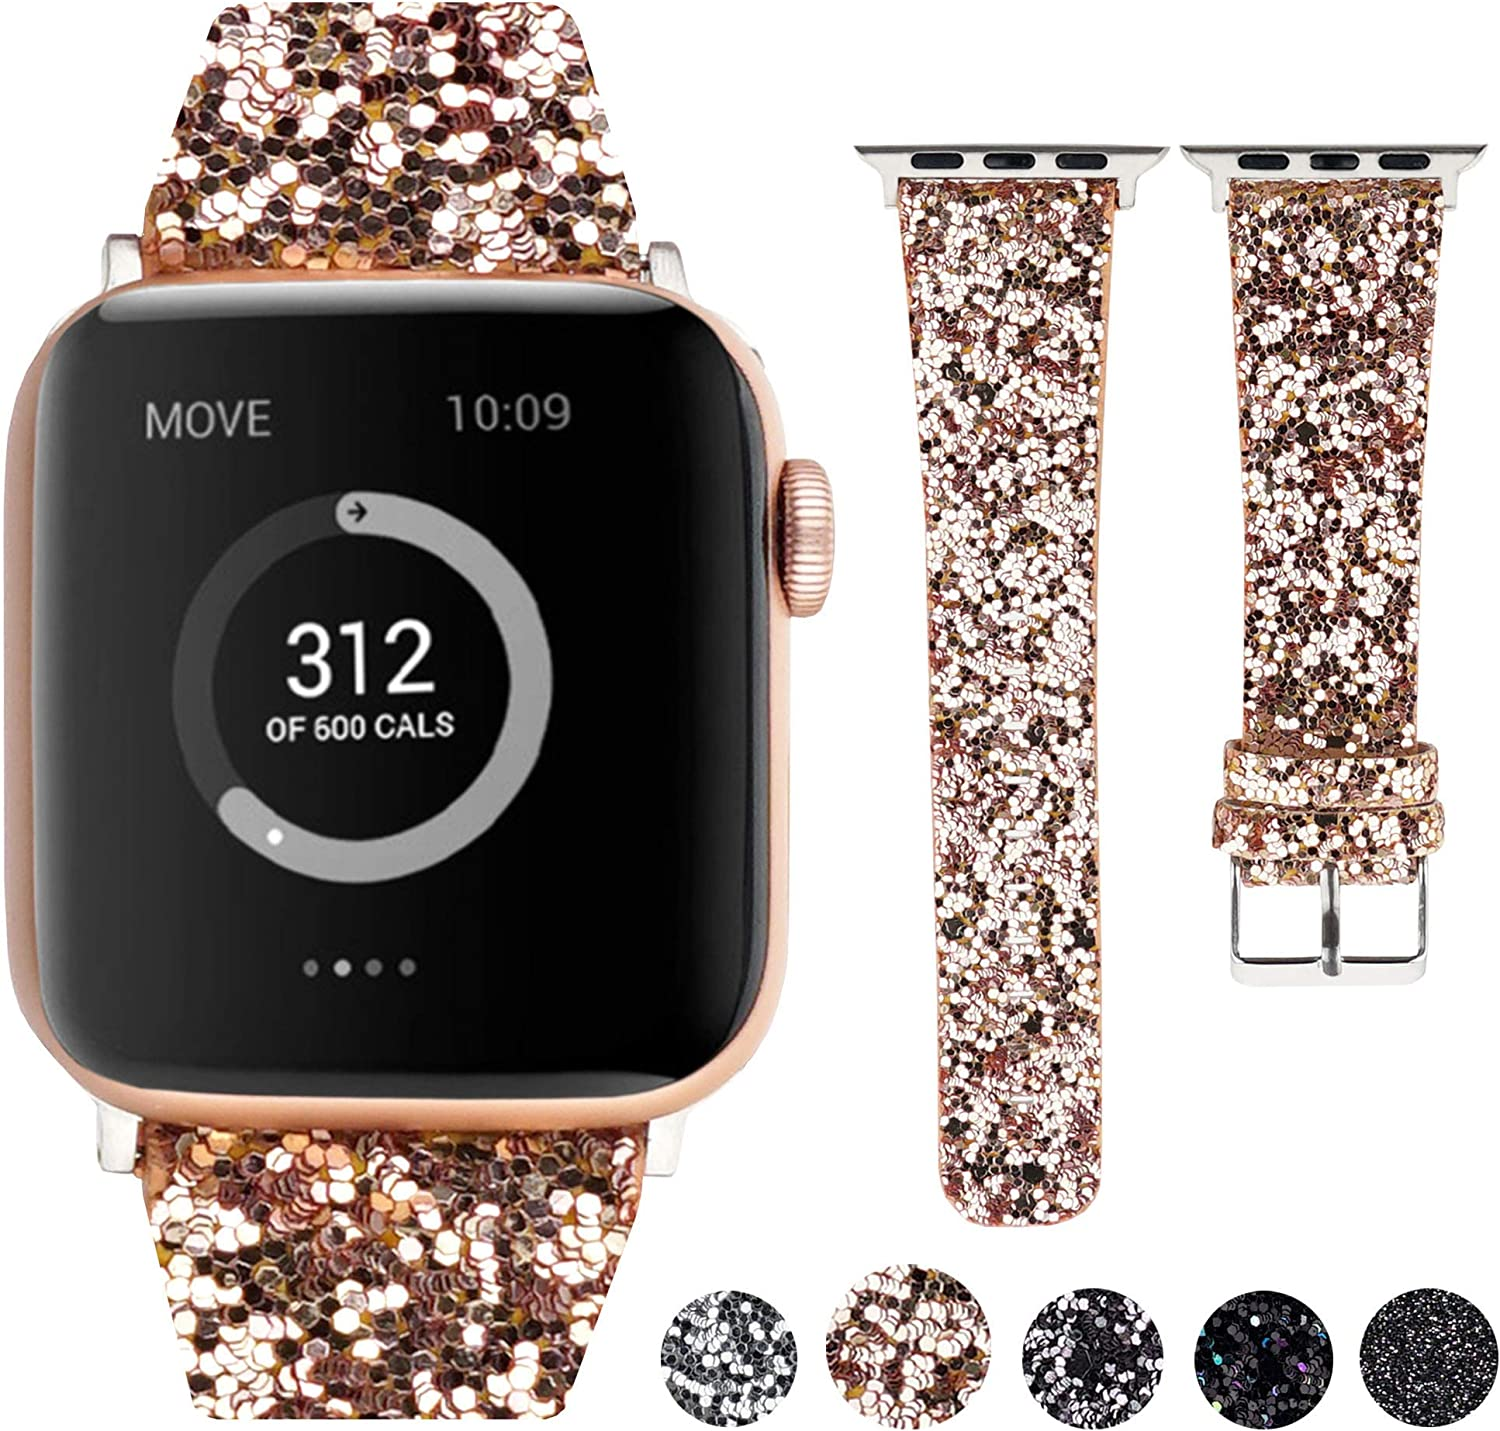 Moonooda Glitter Watch Band Compatible with Apple Watch Band 38mm 40mm 42mm 44mm, Bling Strap Women Men Wristband Replacement for iWatch Series 6 SE 5 4 3 2 1